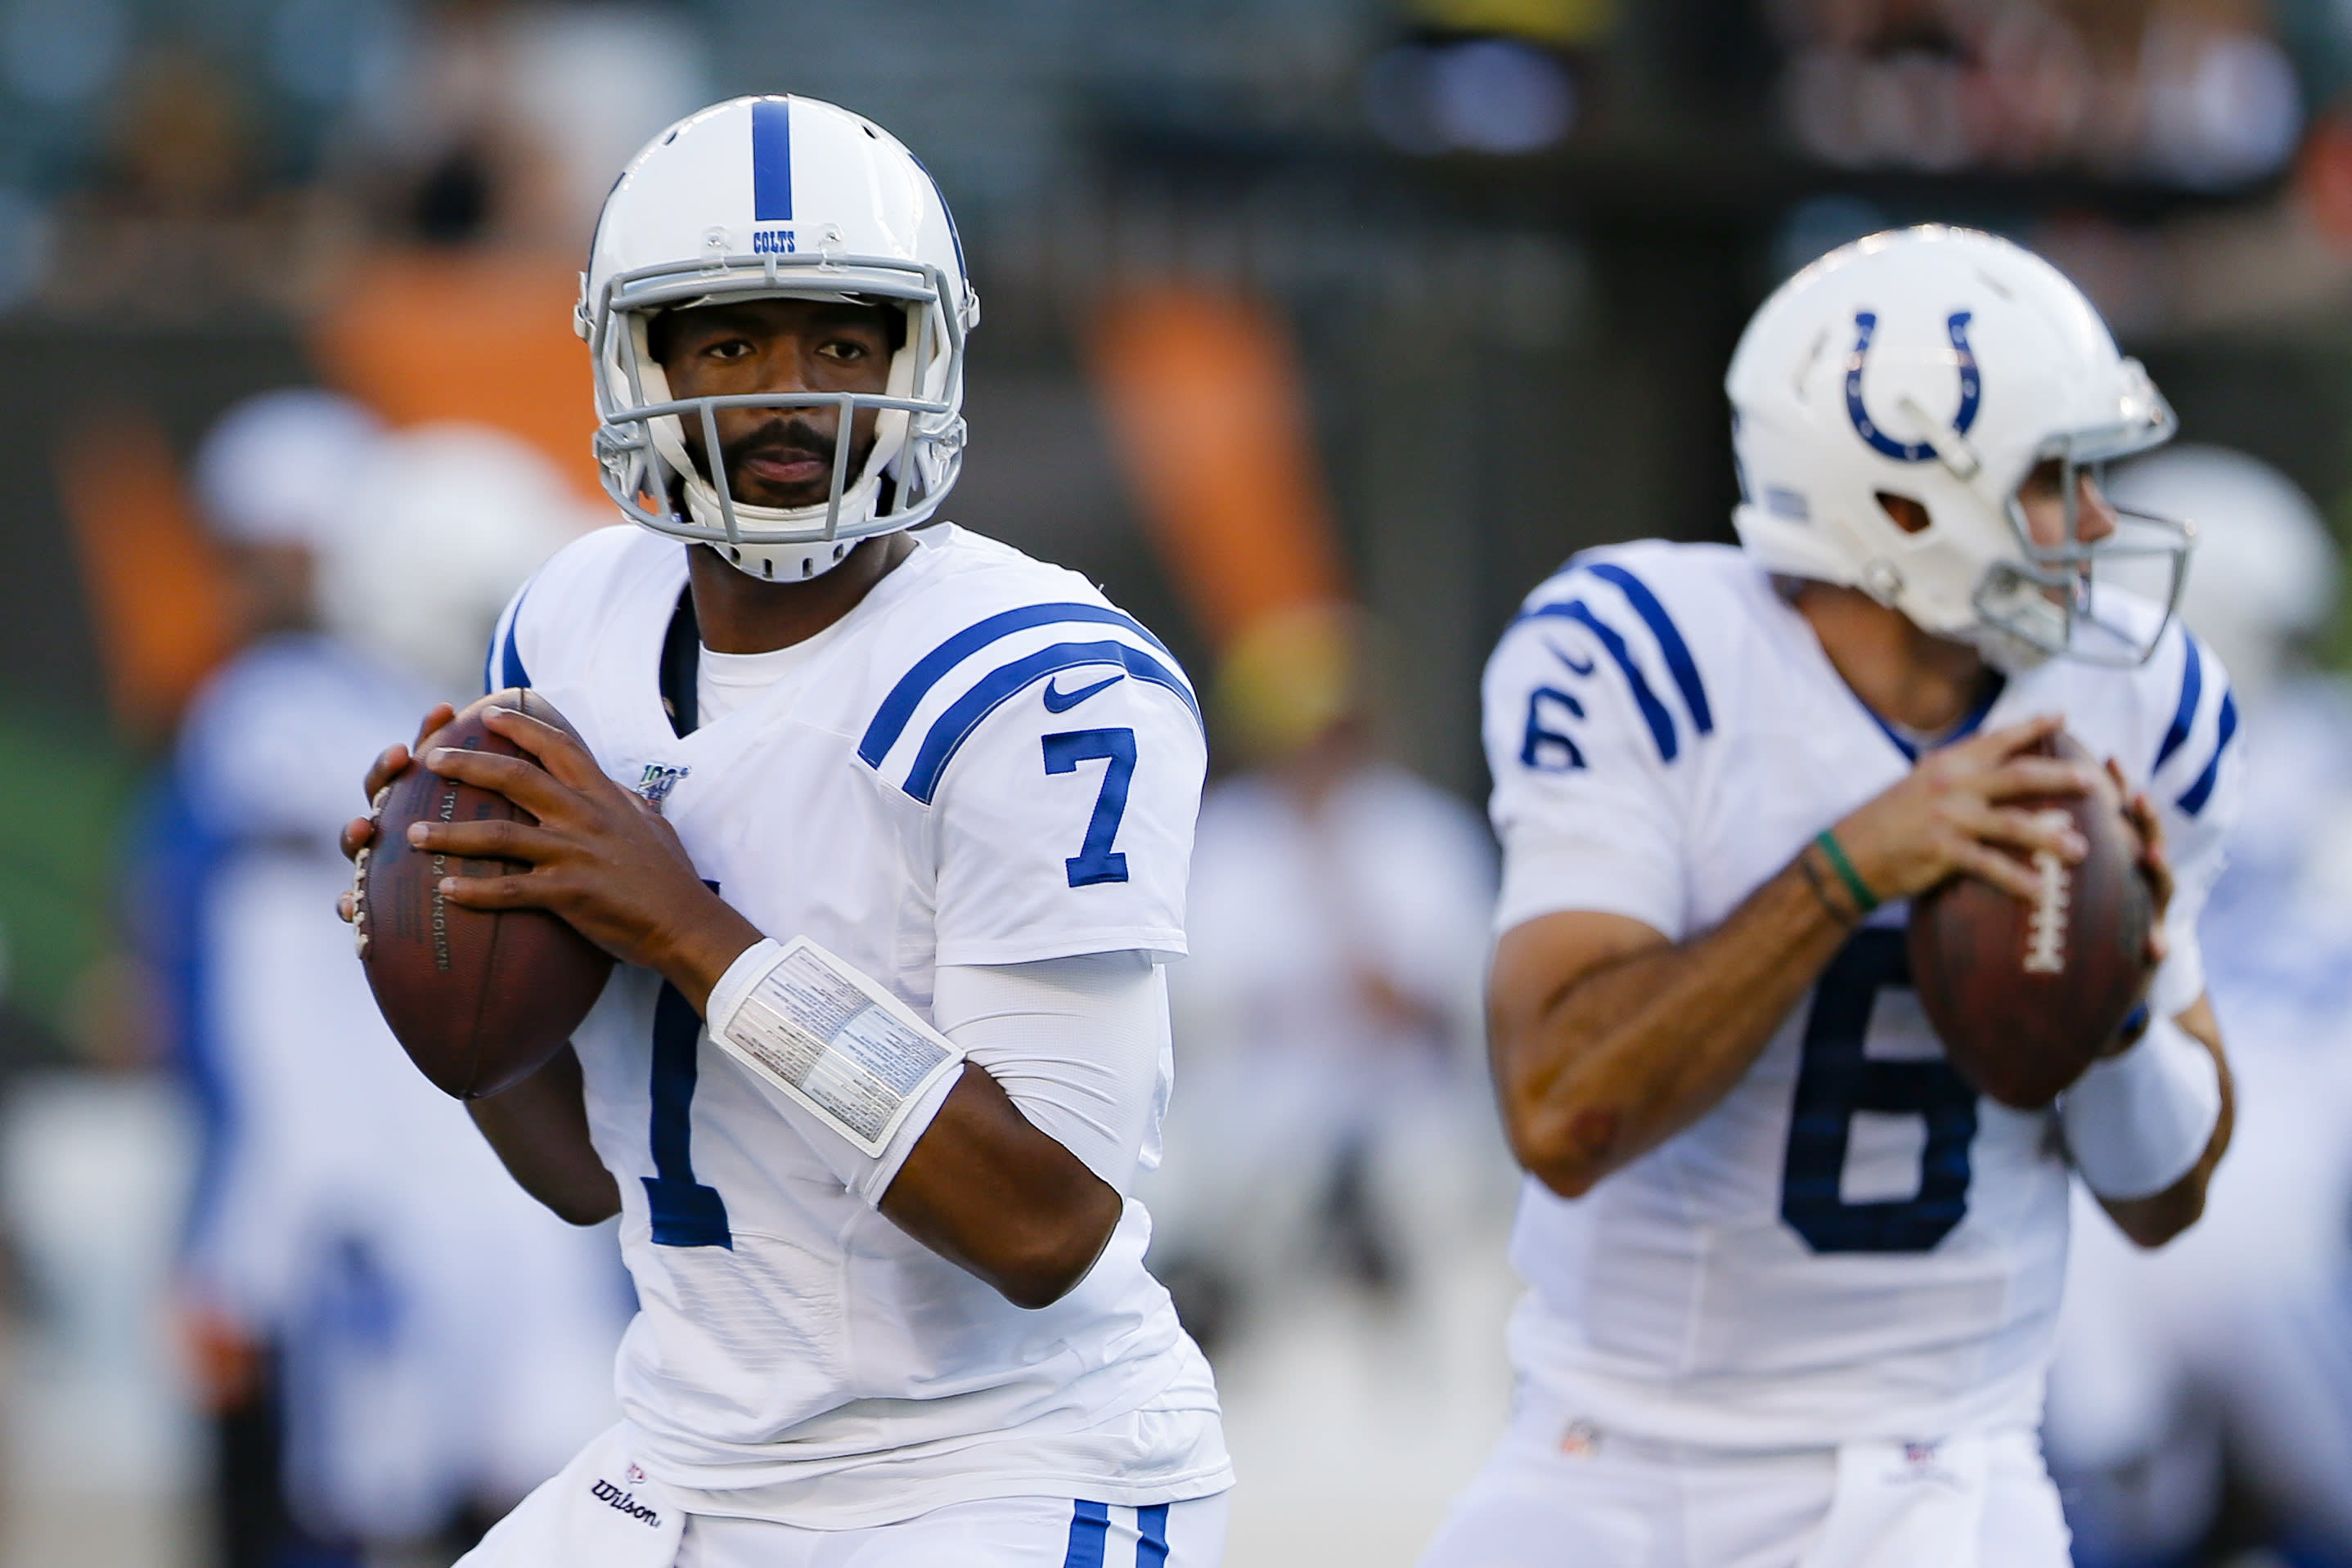 Indianapolis Colts quarterbacks Jacoby Brissett (7) and Chad Kelly warm up for the team's FL preseason football game against the Cincinnati Bengals, Thursday, Aug. 29, 2019, in Cincinnati. (AP Photo/Gary Landers)